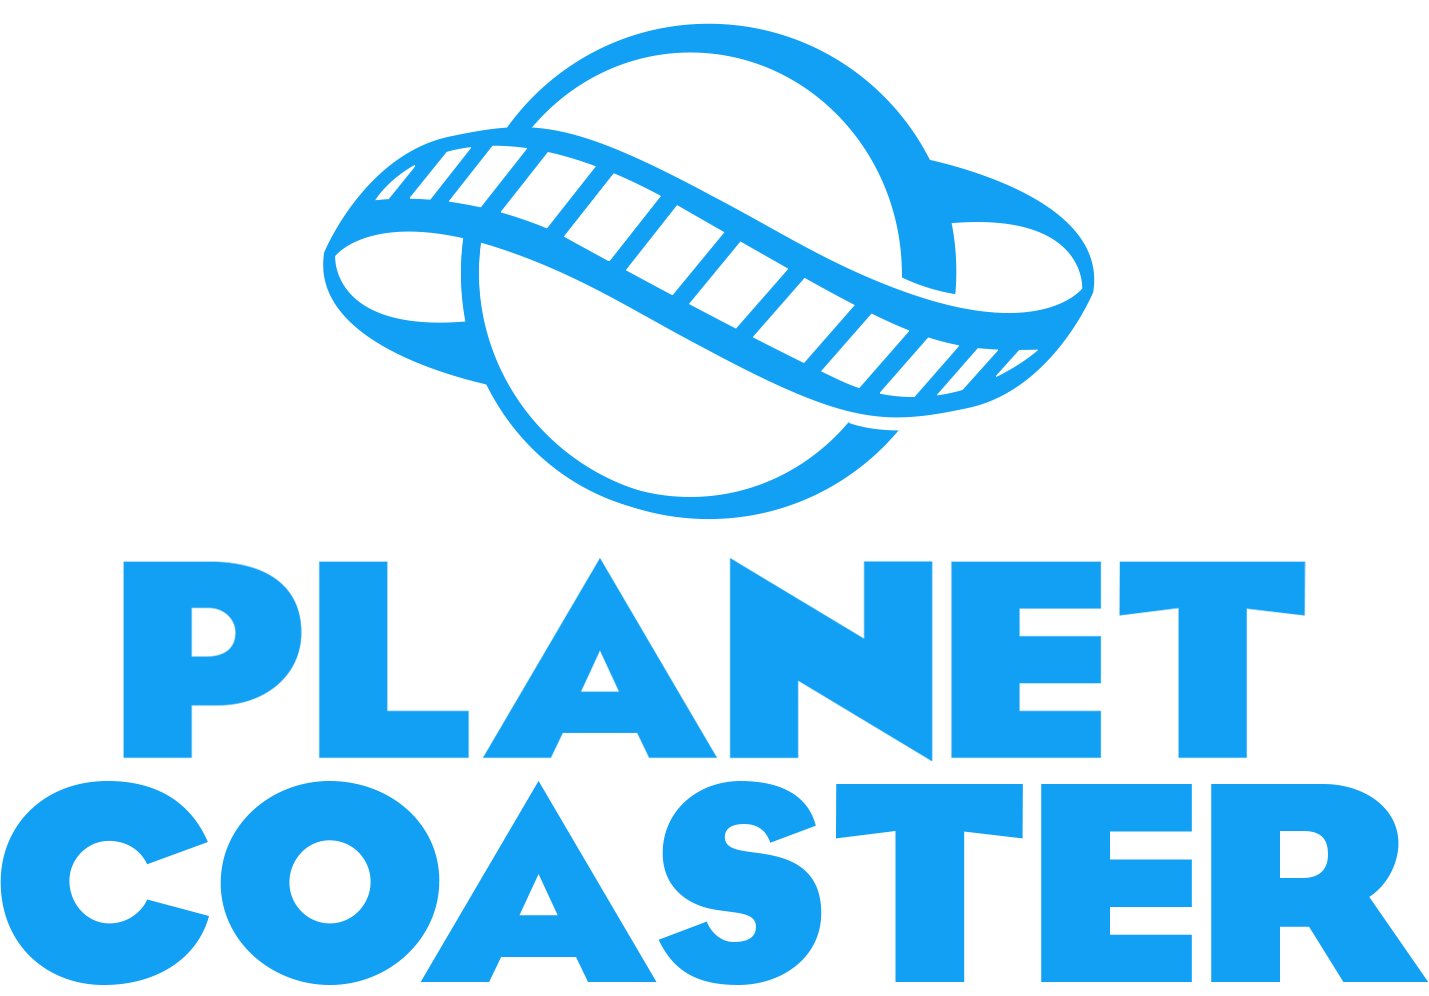 Ferrari Games >> Planet Coaster Game Teases Incredible New Tracks - Coaster101